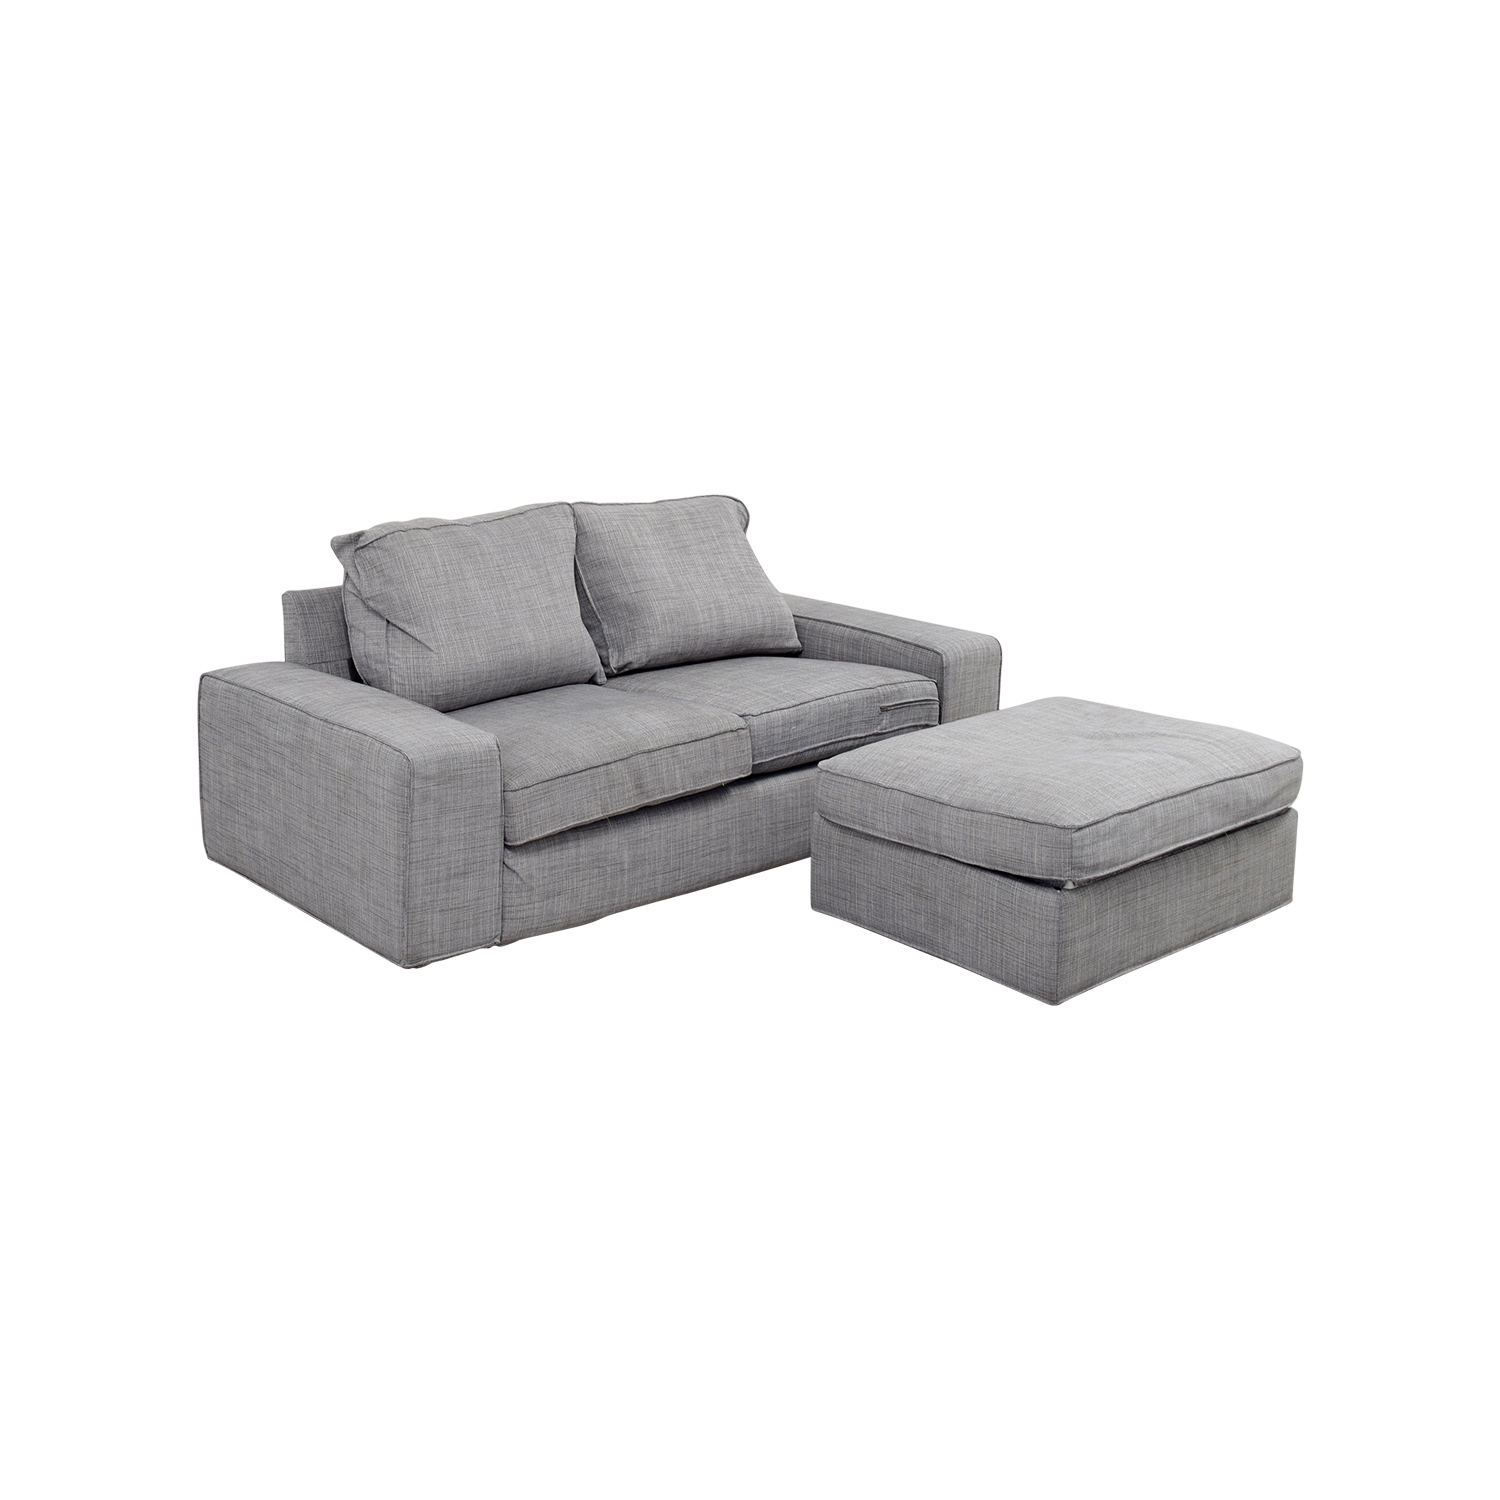 64 Off Ikea Ikea Kivik Gray Sofa And Ottoman Sofas